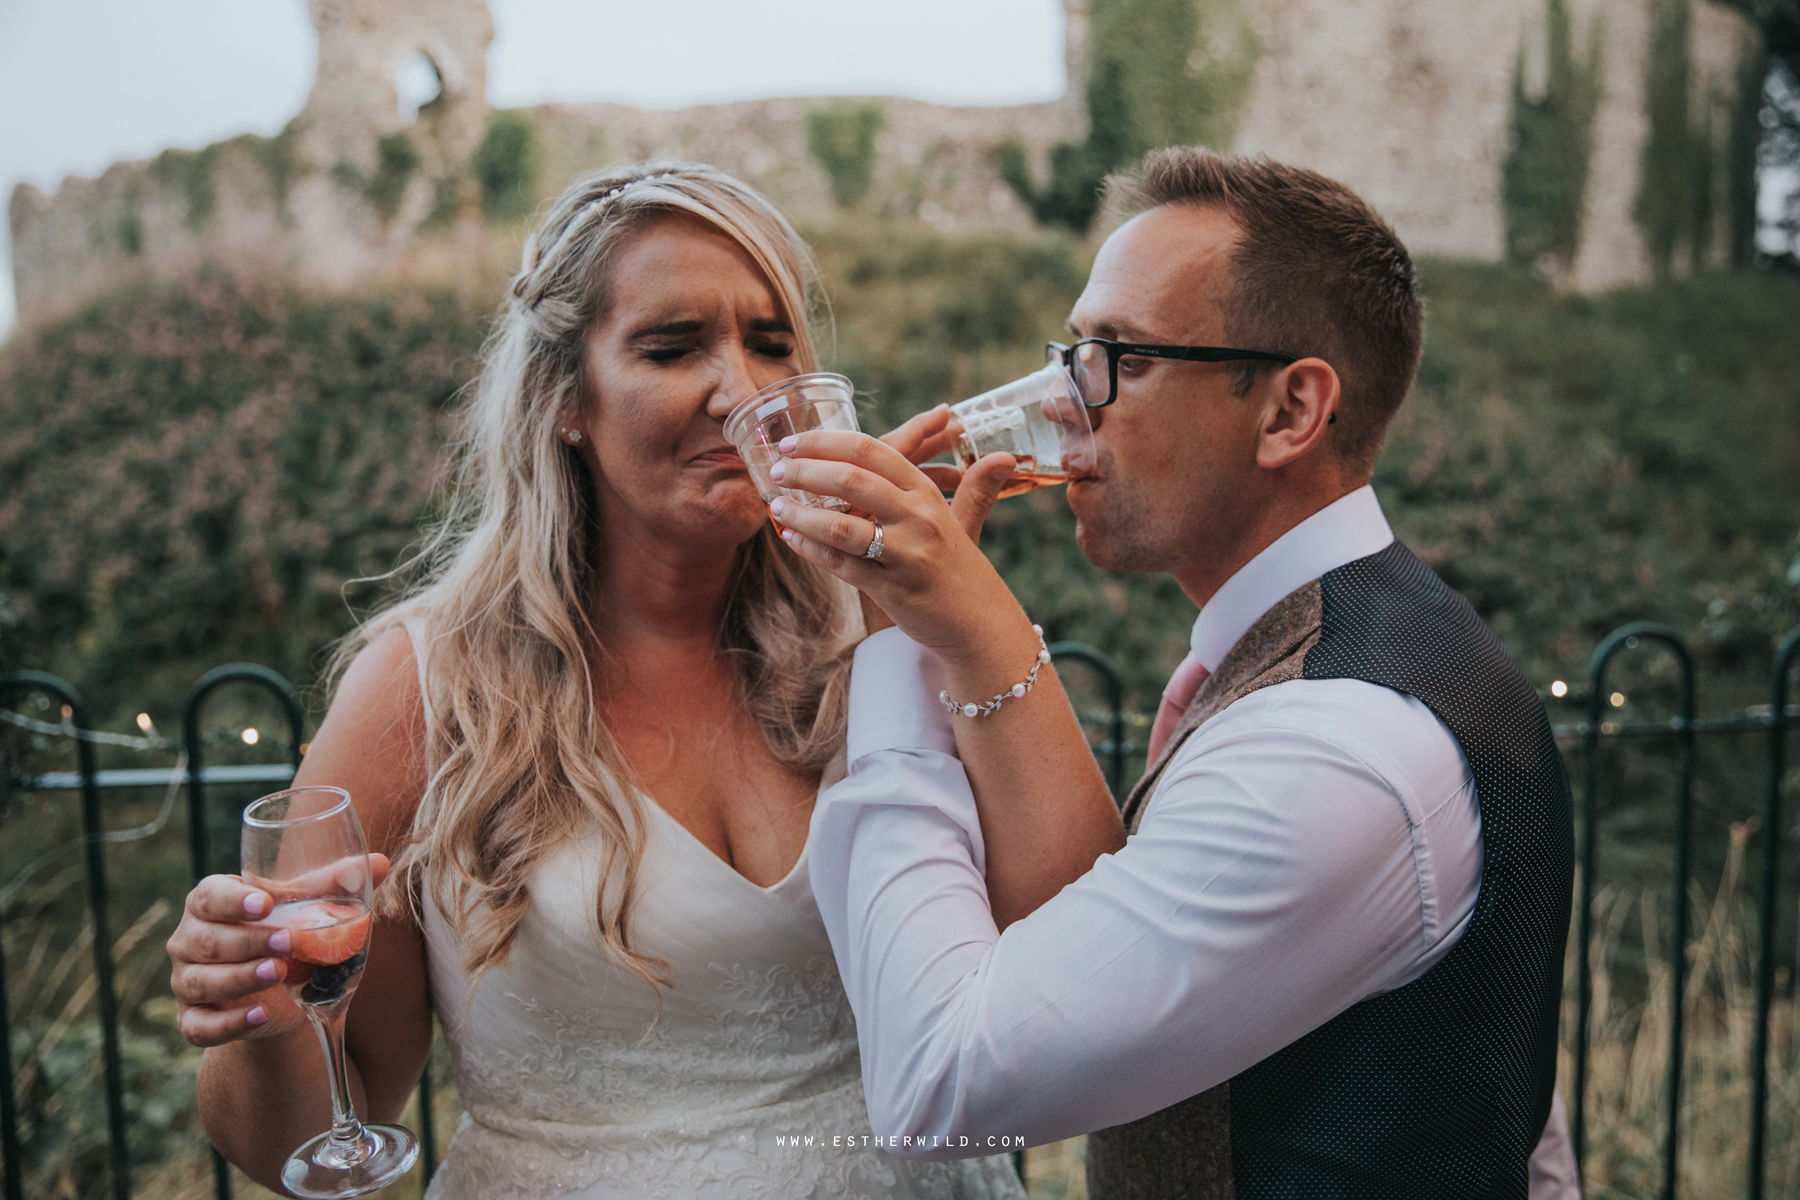 Swaffham_Wedding_Castle_Acre_Norfolk_Esther_Wild_Photographer_Wedding_Photography_3R8A2481.jpg